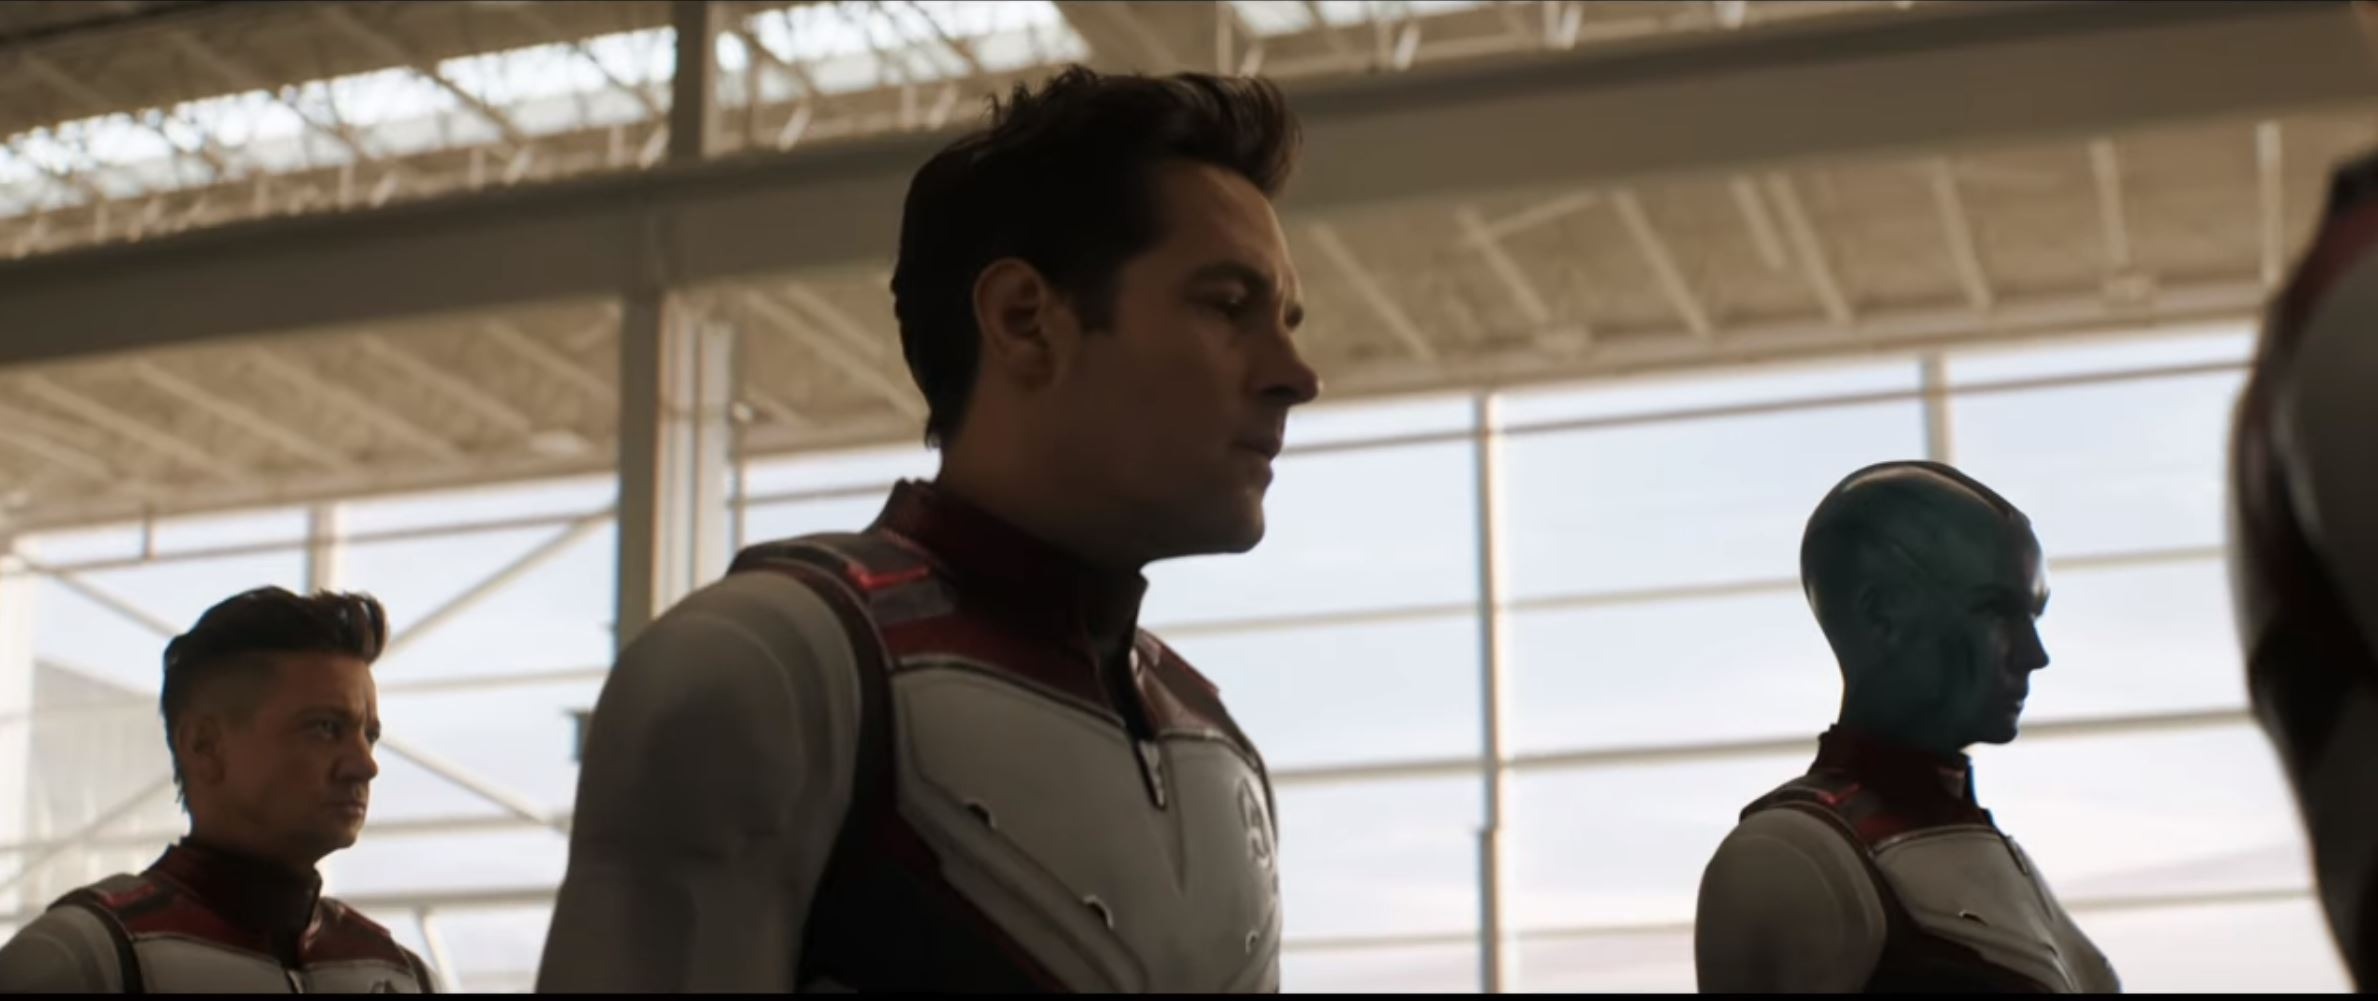 The New Marvel: Endgame Trailer Has Landed!